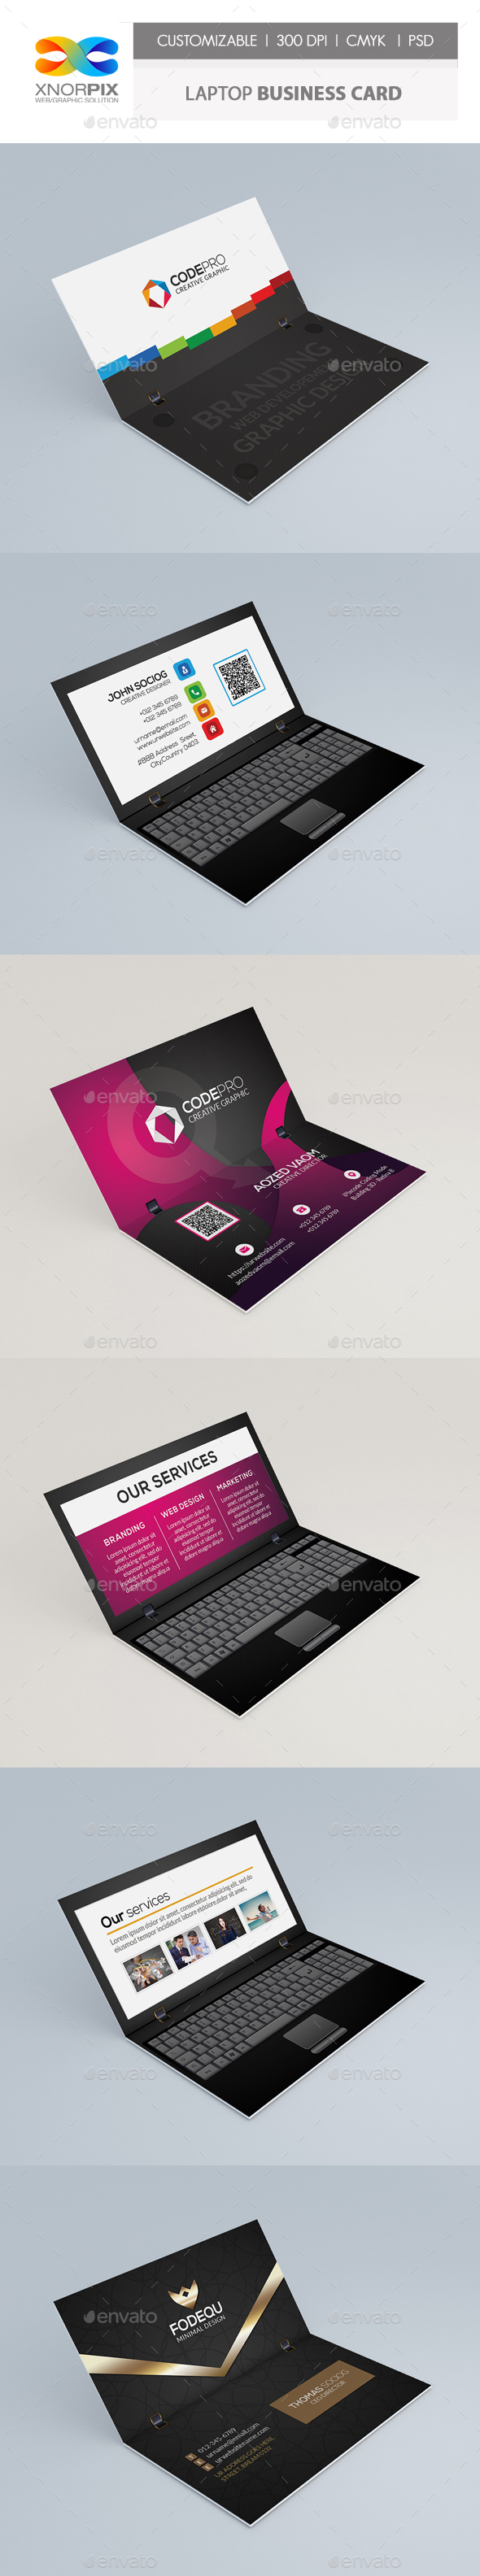 Laptop Business Card - Real Objects Business Cards